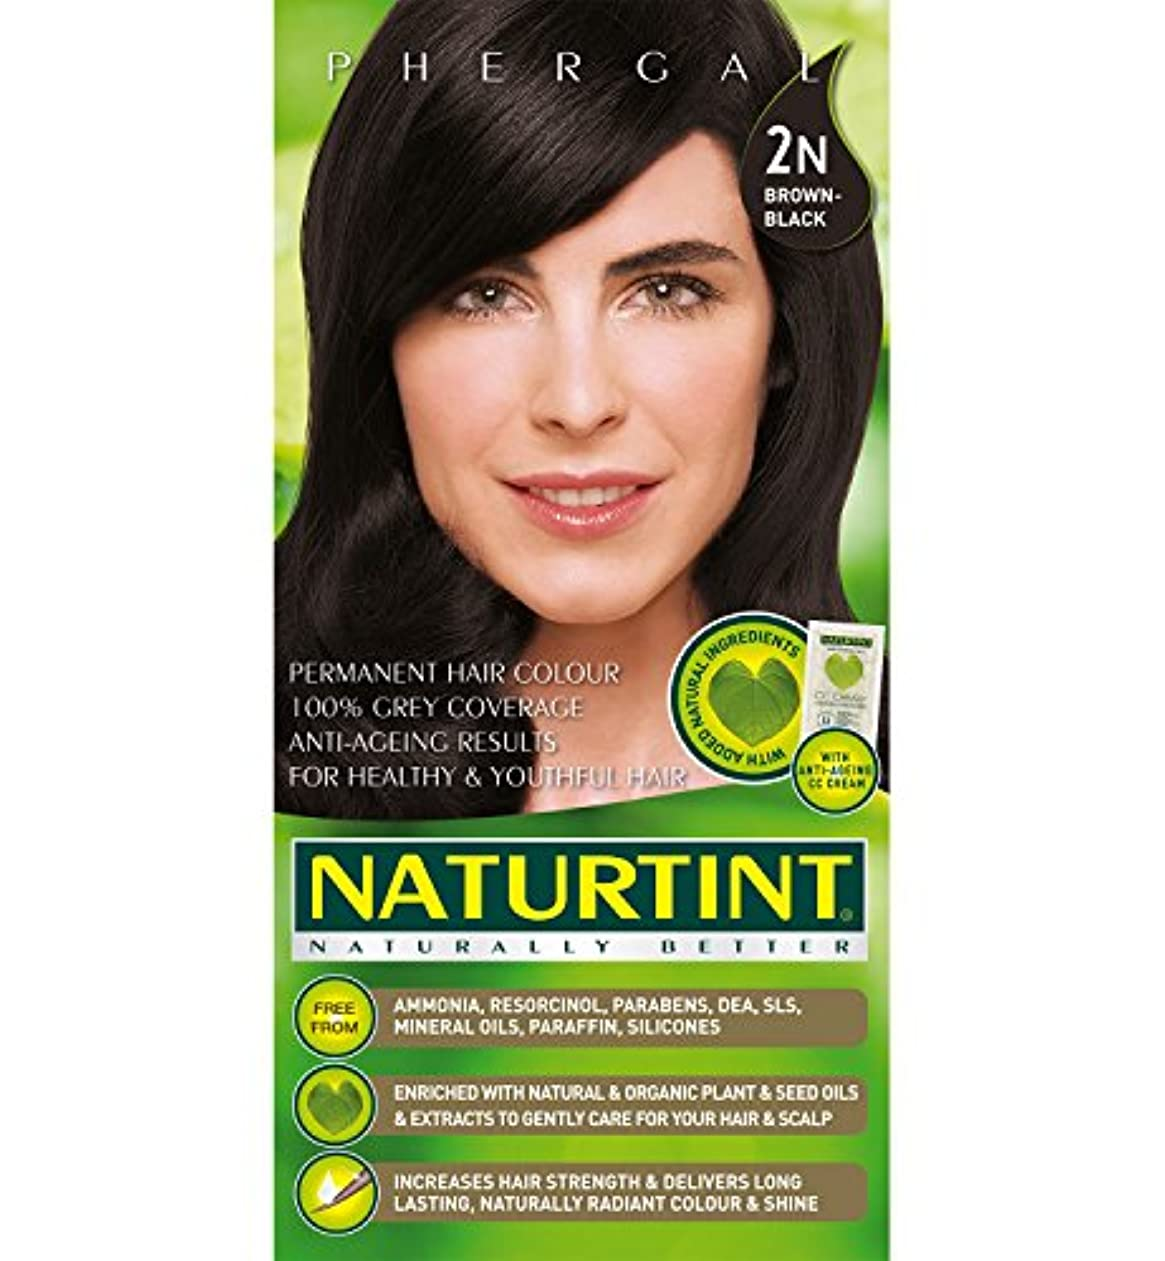 Naturtint Hair Color 2N Brown Black Permanent (並行輸入品)